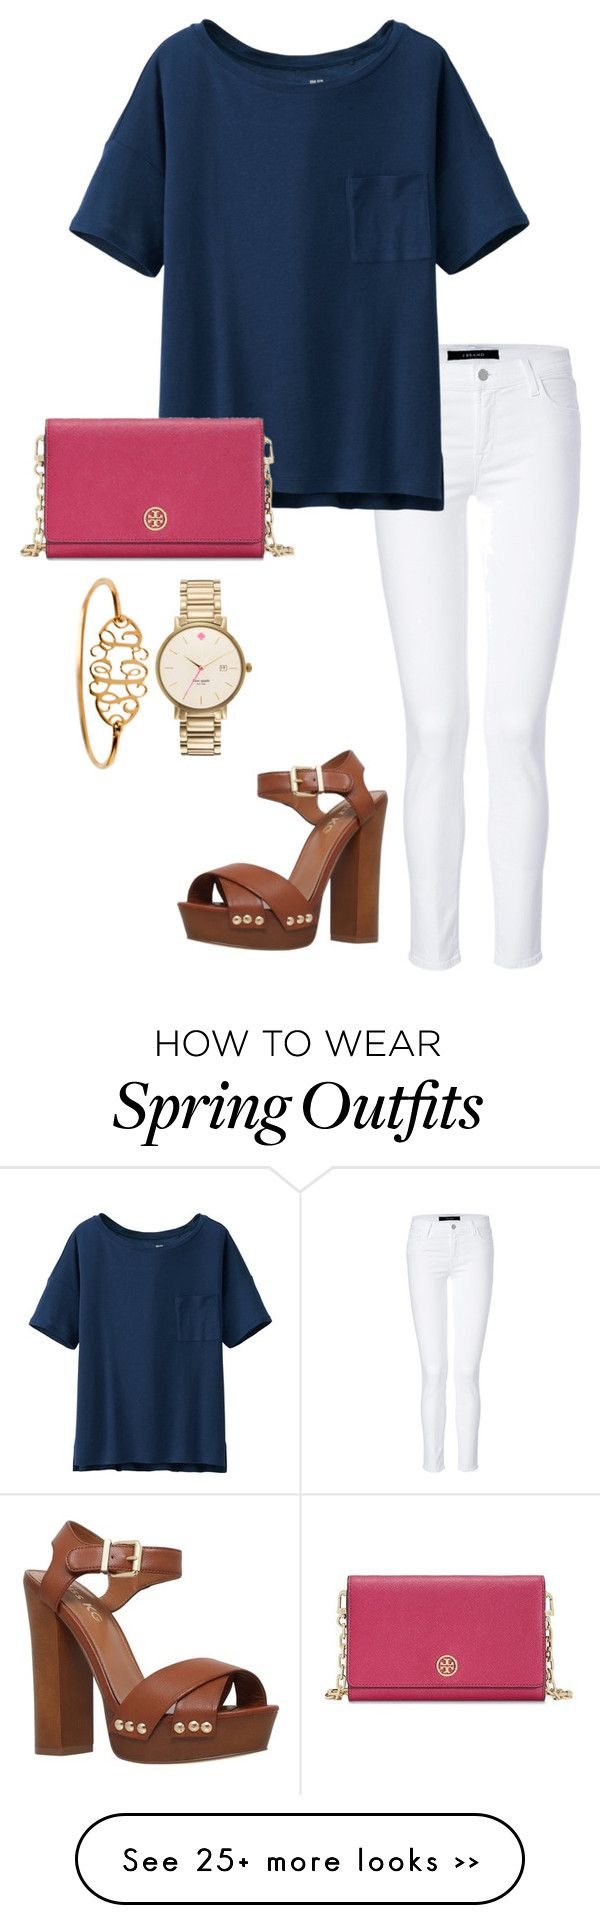 """""""last of spring outfits"""" by sarinaalily on Polyvore featuring J Brand, Uniqlo, Tory Burch, Kate Spade and Miss KG"""